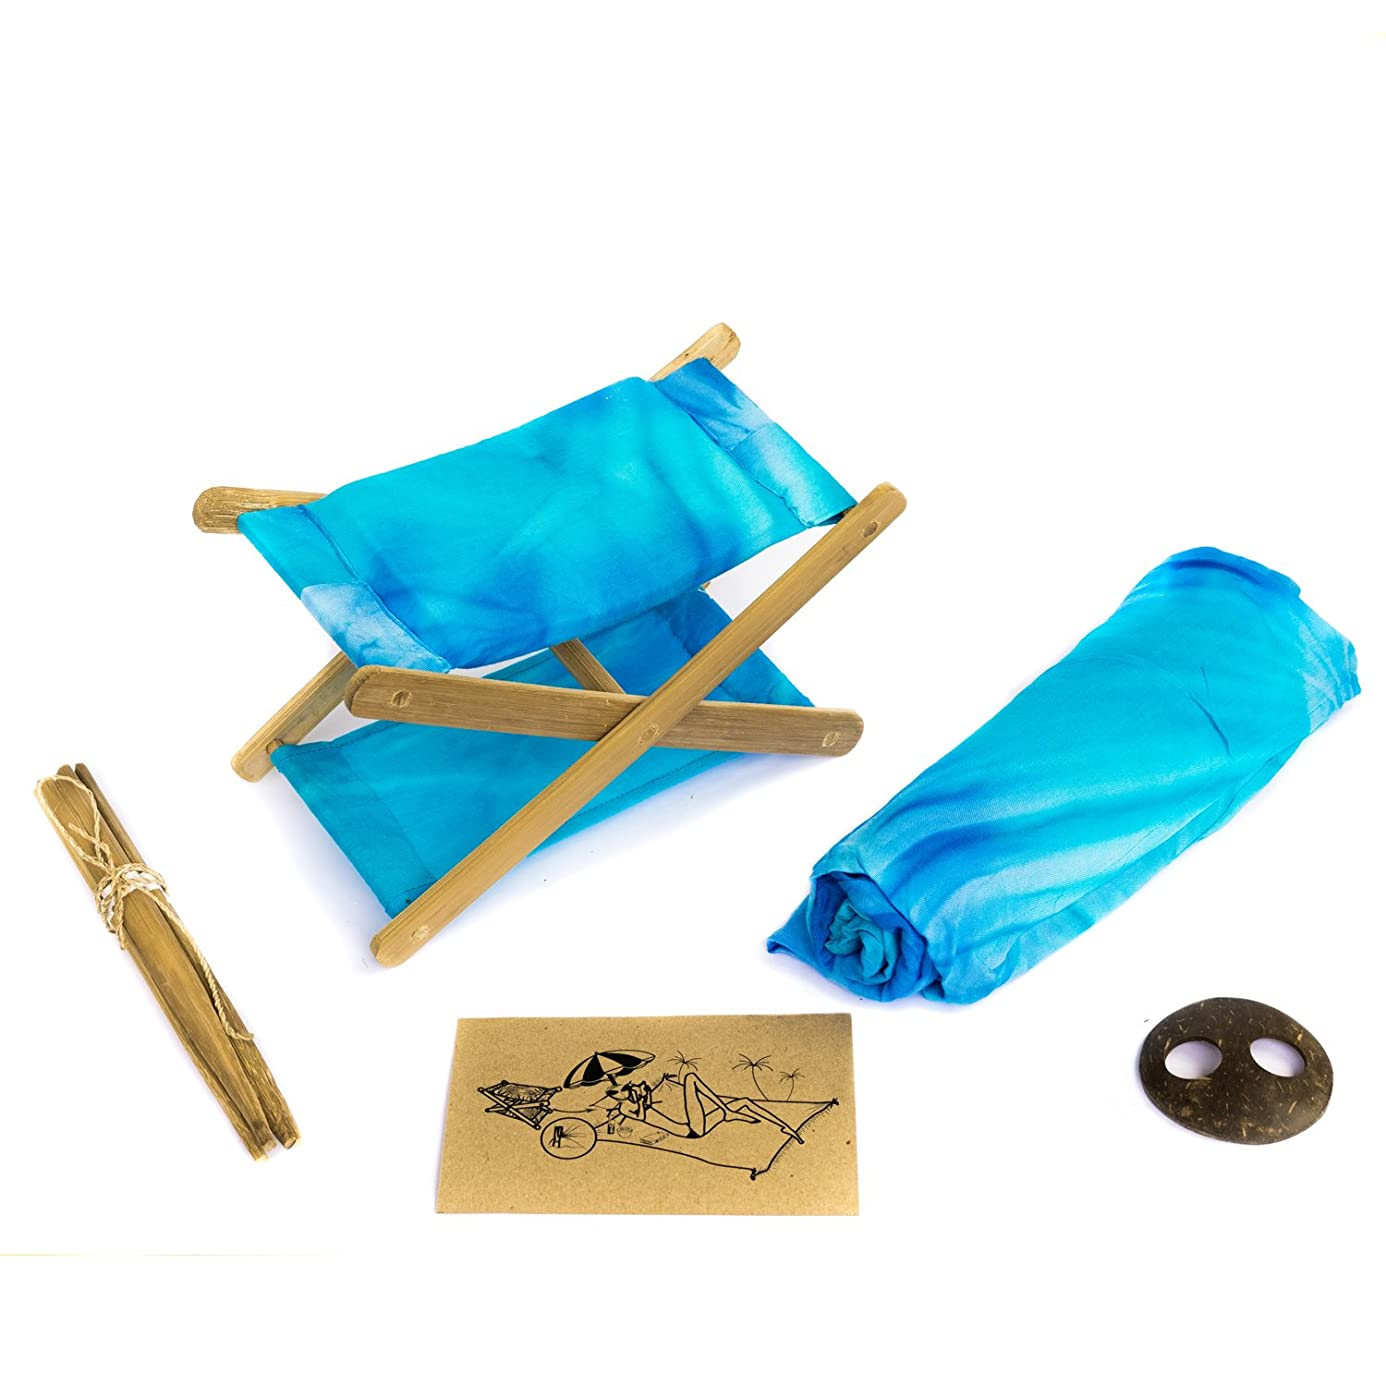 Bali Boo Head Hammock Great to Read During Camping Trip, to Use as Headrest to Read on The Beach   Comes a Matching Sarong in a Bamboo Basket   Handmade in Bali from Natural Bamboo